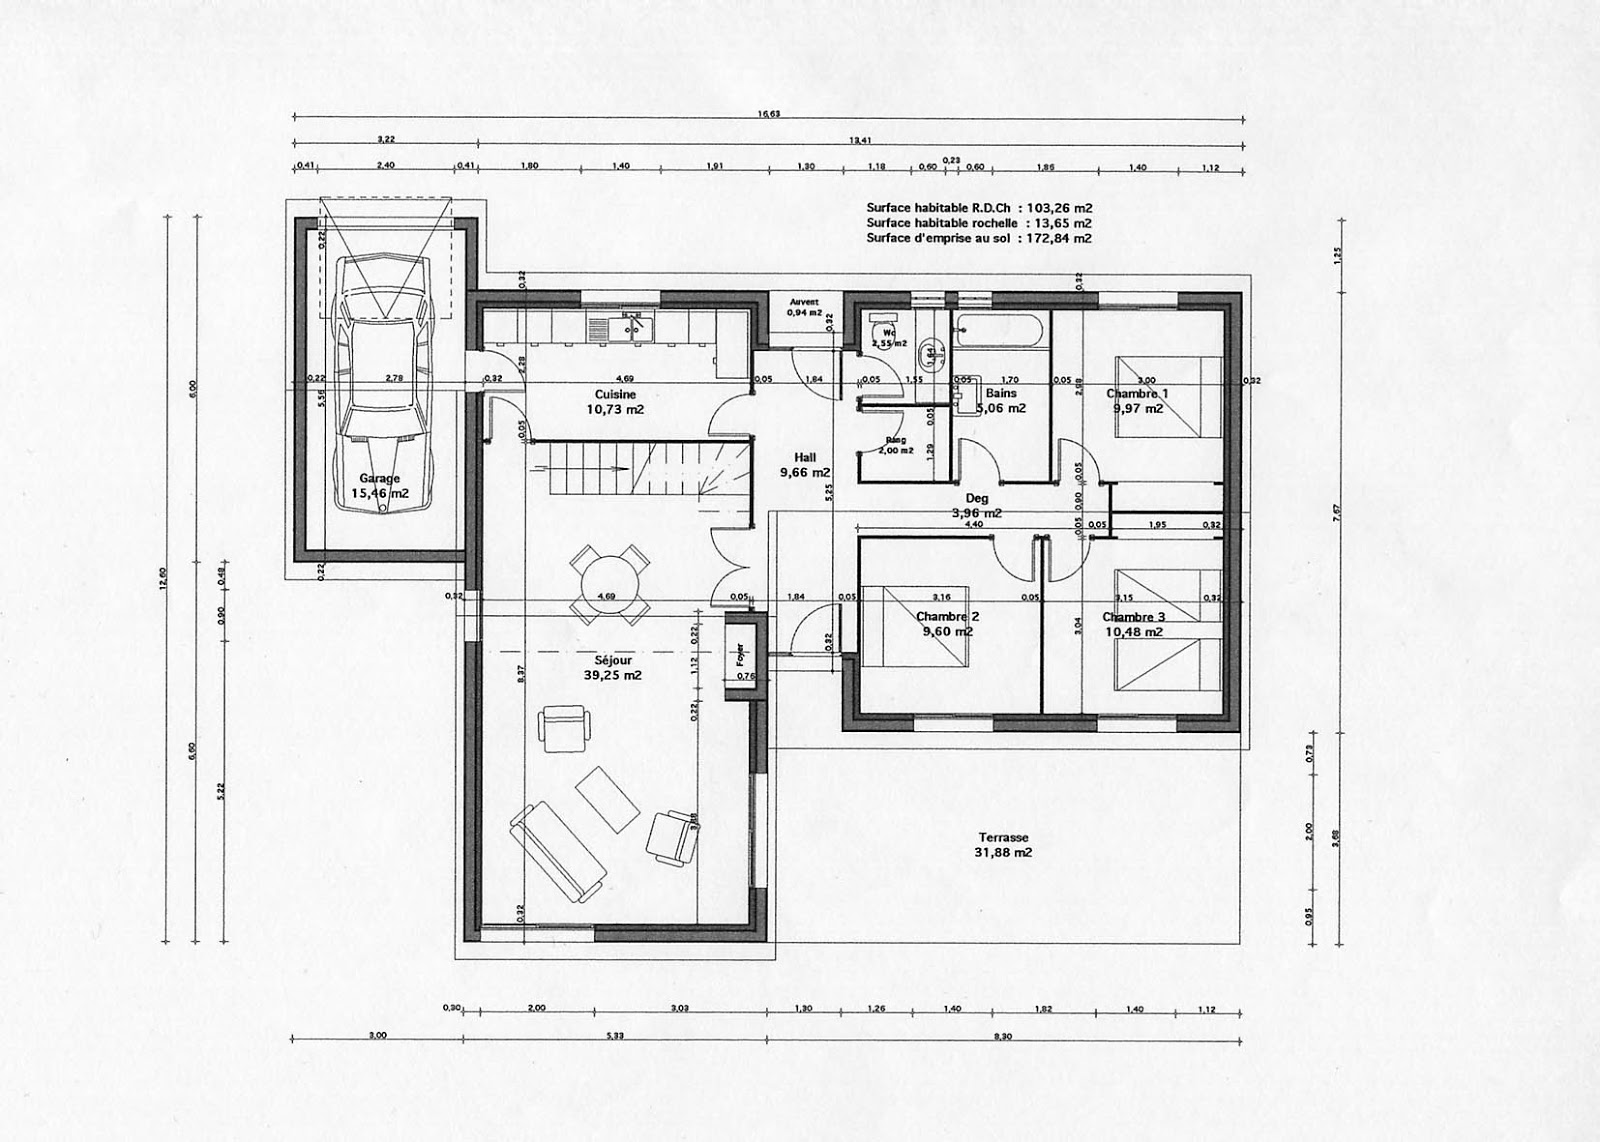 Plan de maison contemporaine gratuit avie home for Plan maison contemporaine gratuit